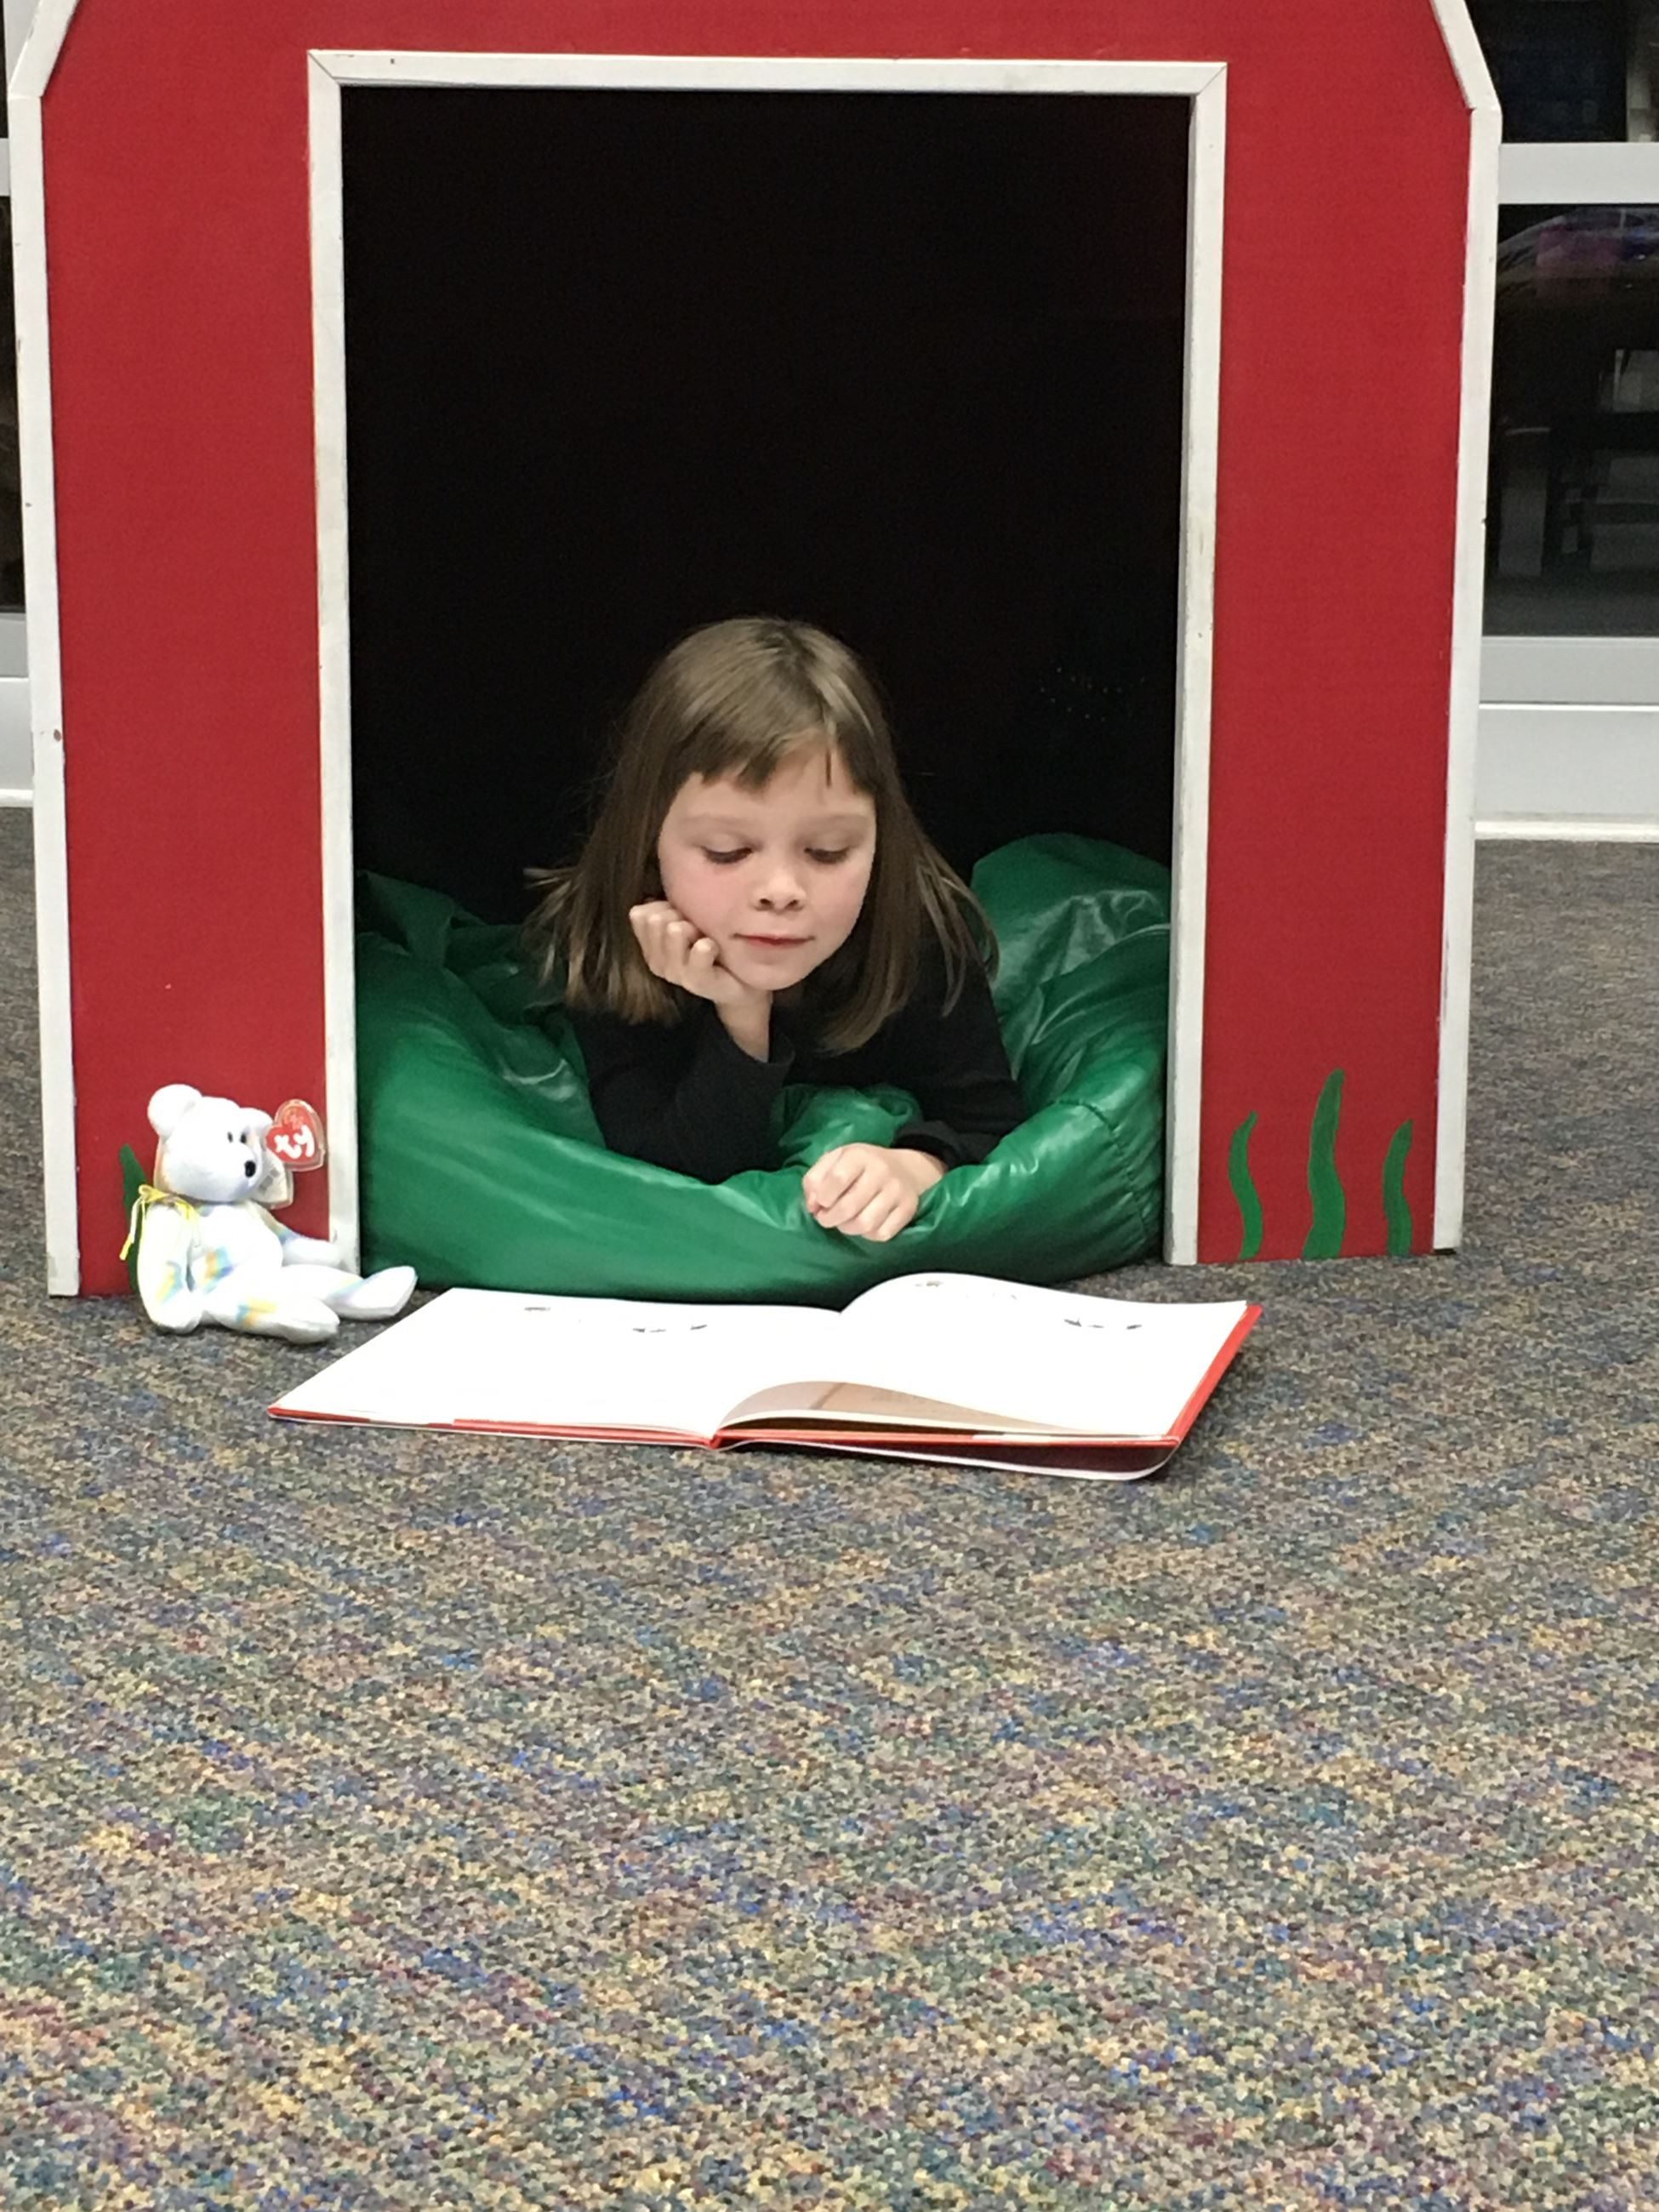 You can also check out one of our Reading Buddies to read with in the library.